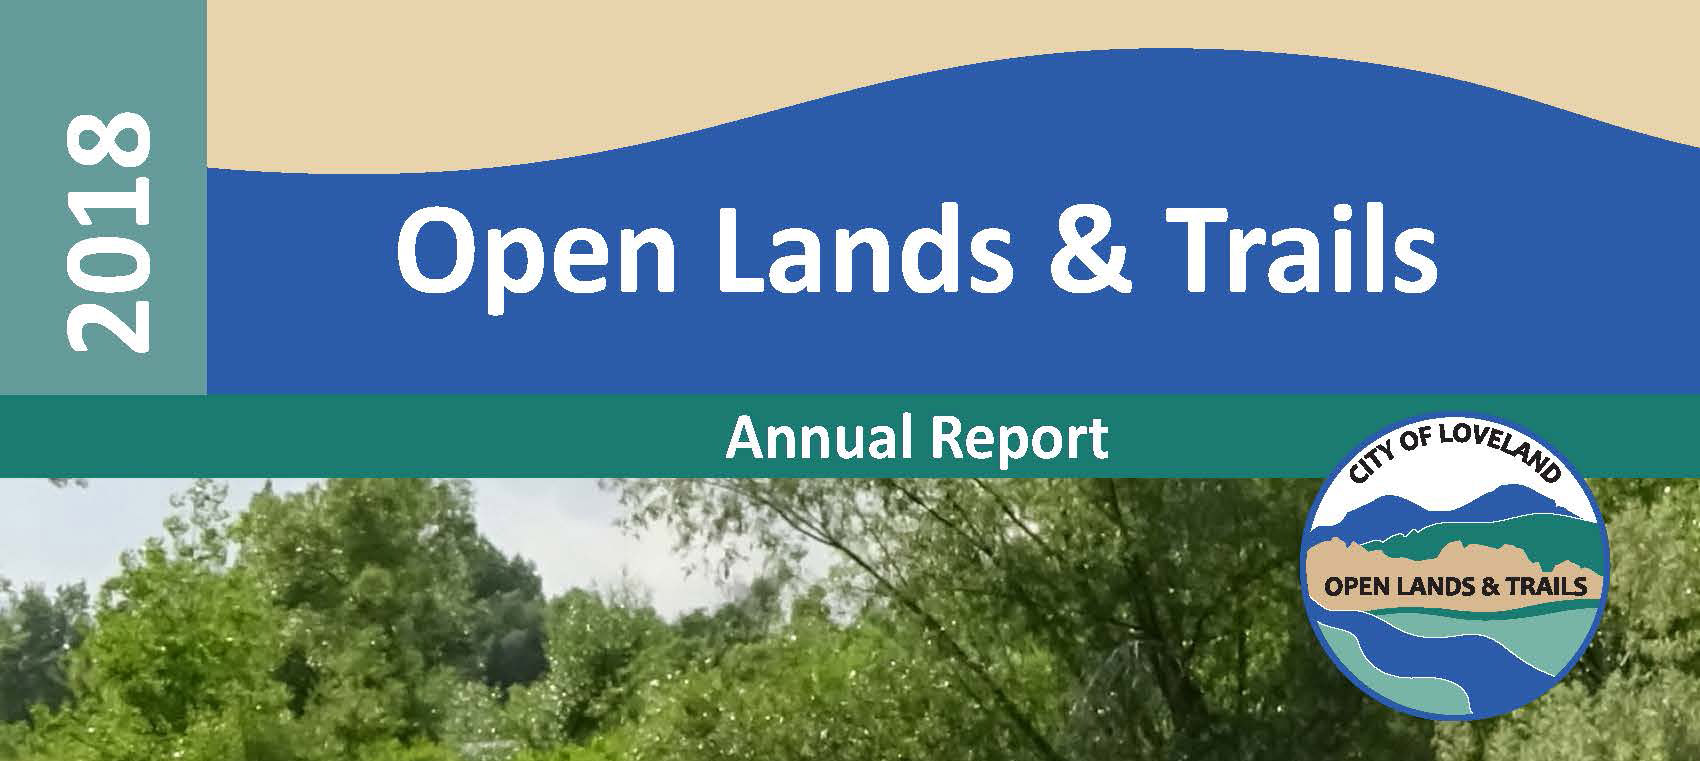 cover of 2018 open lands & trails annual report